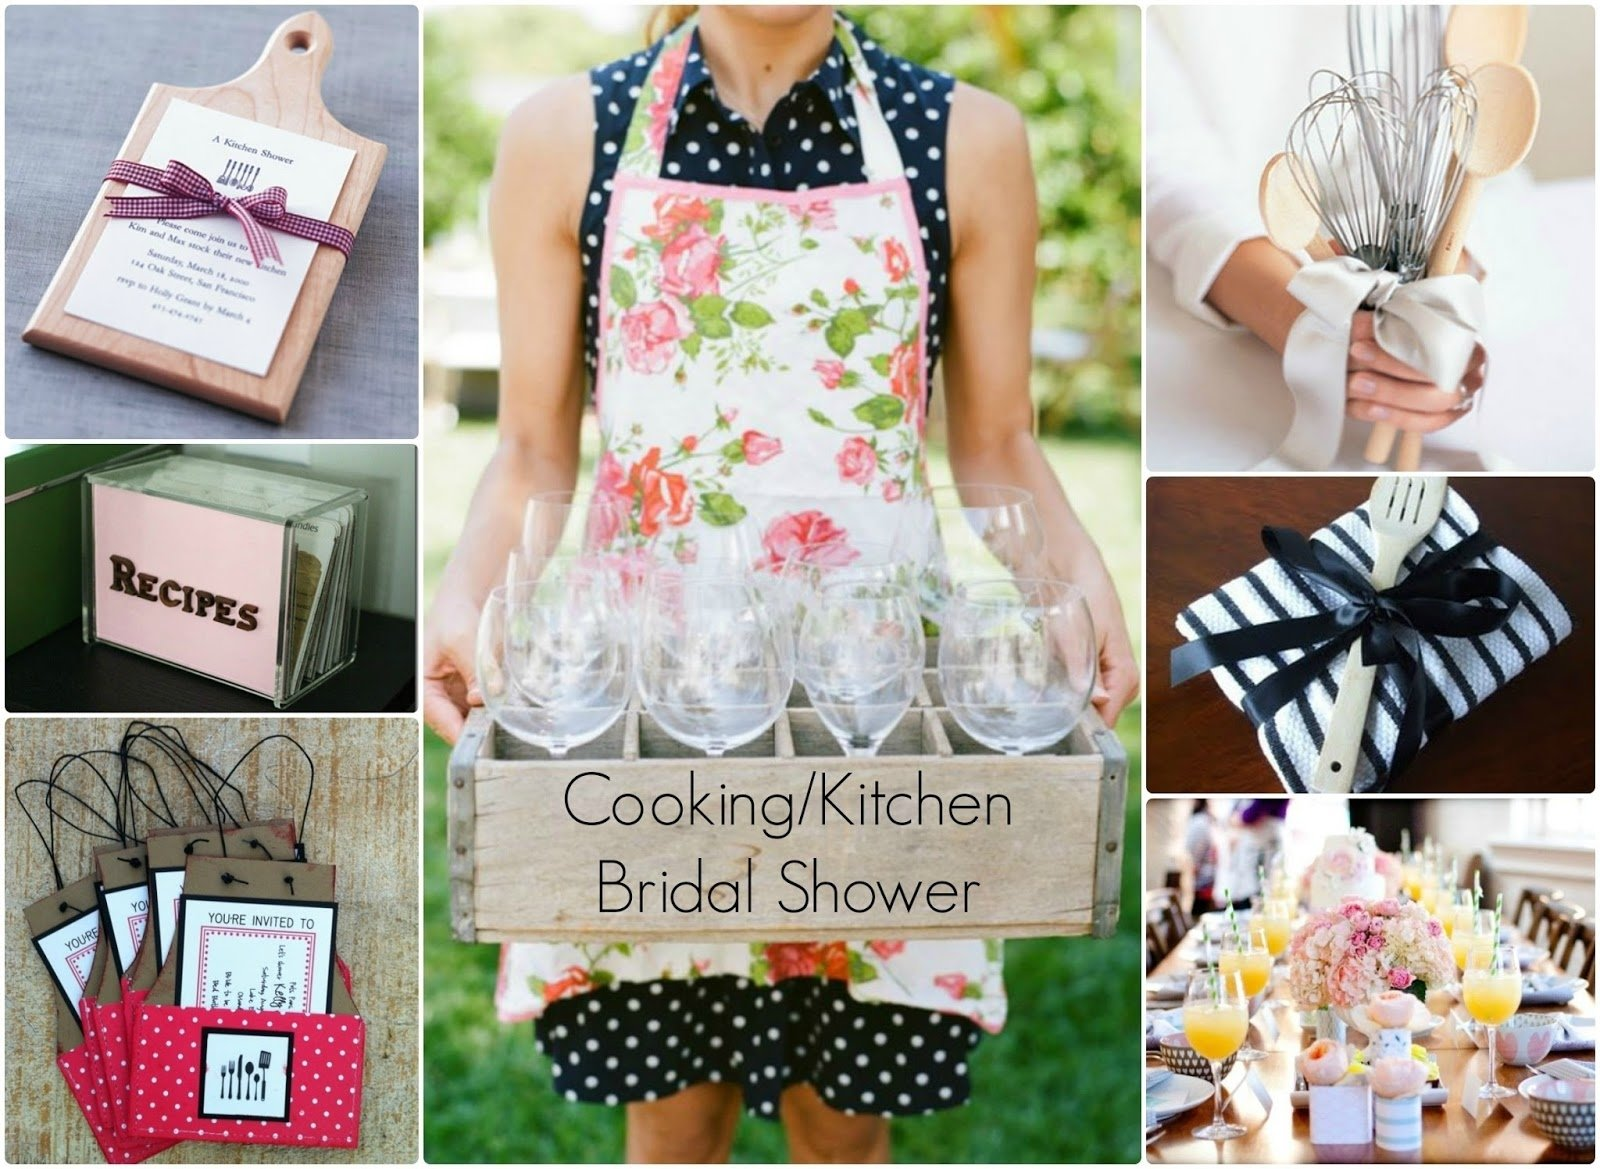 10 Stylish Bridal Shower Themes And Ideas cooking or kitchen themed bridal shower inspiration aisle perfect